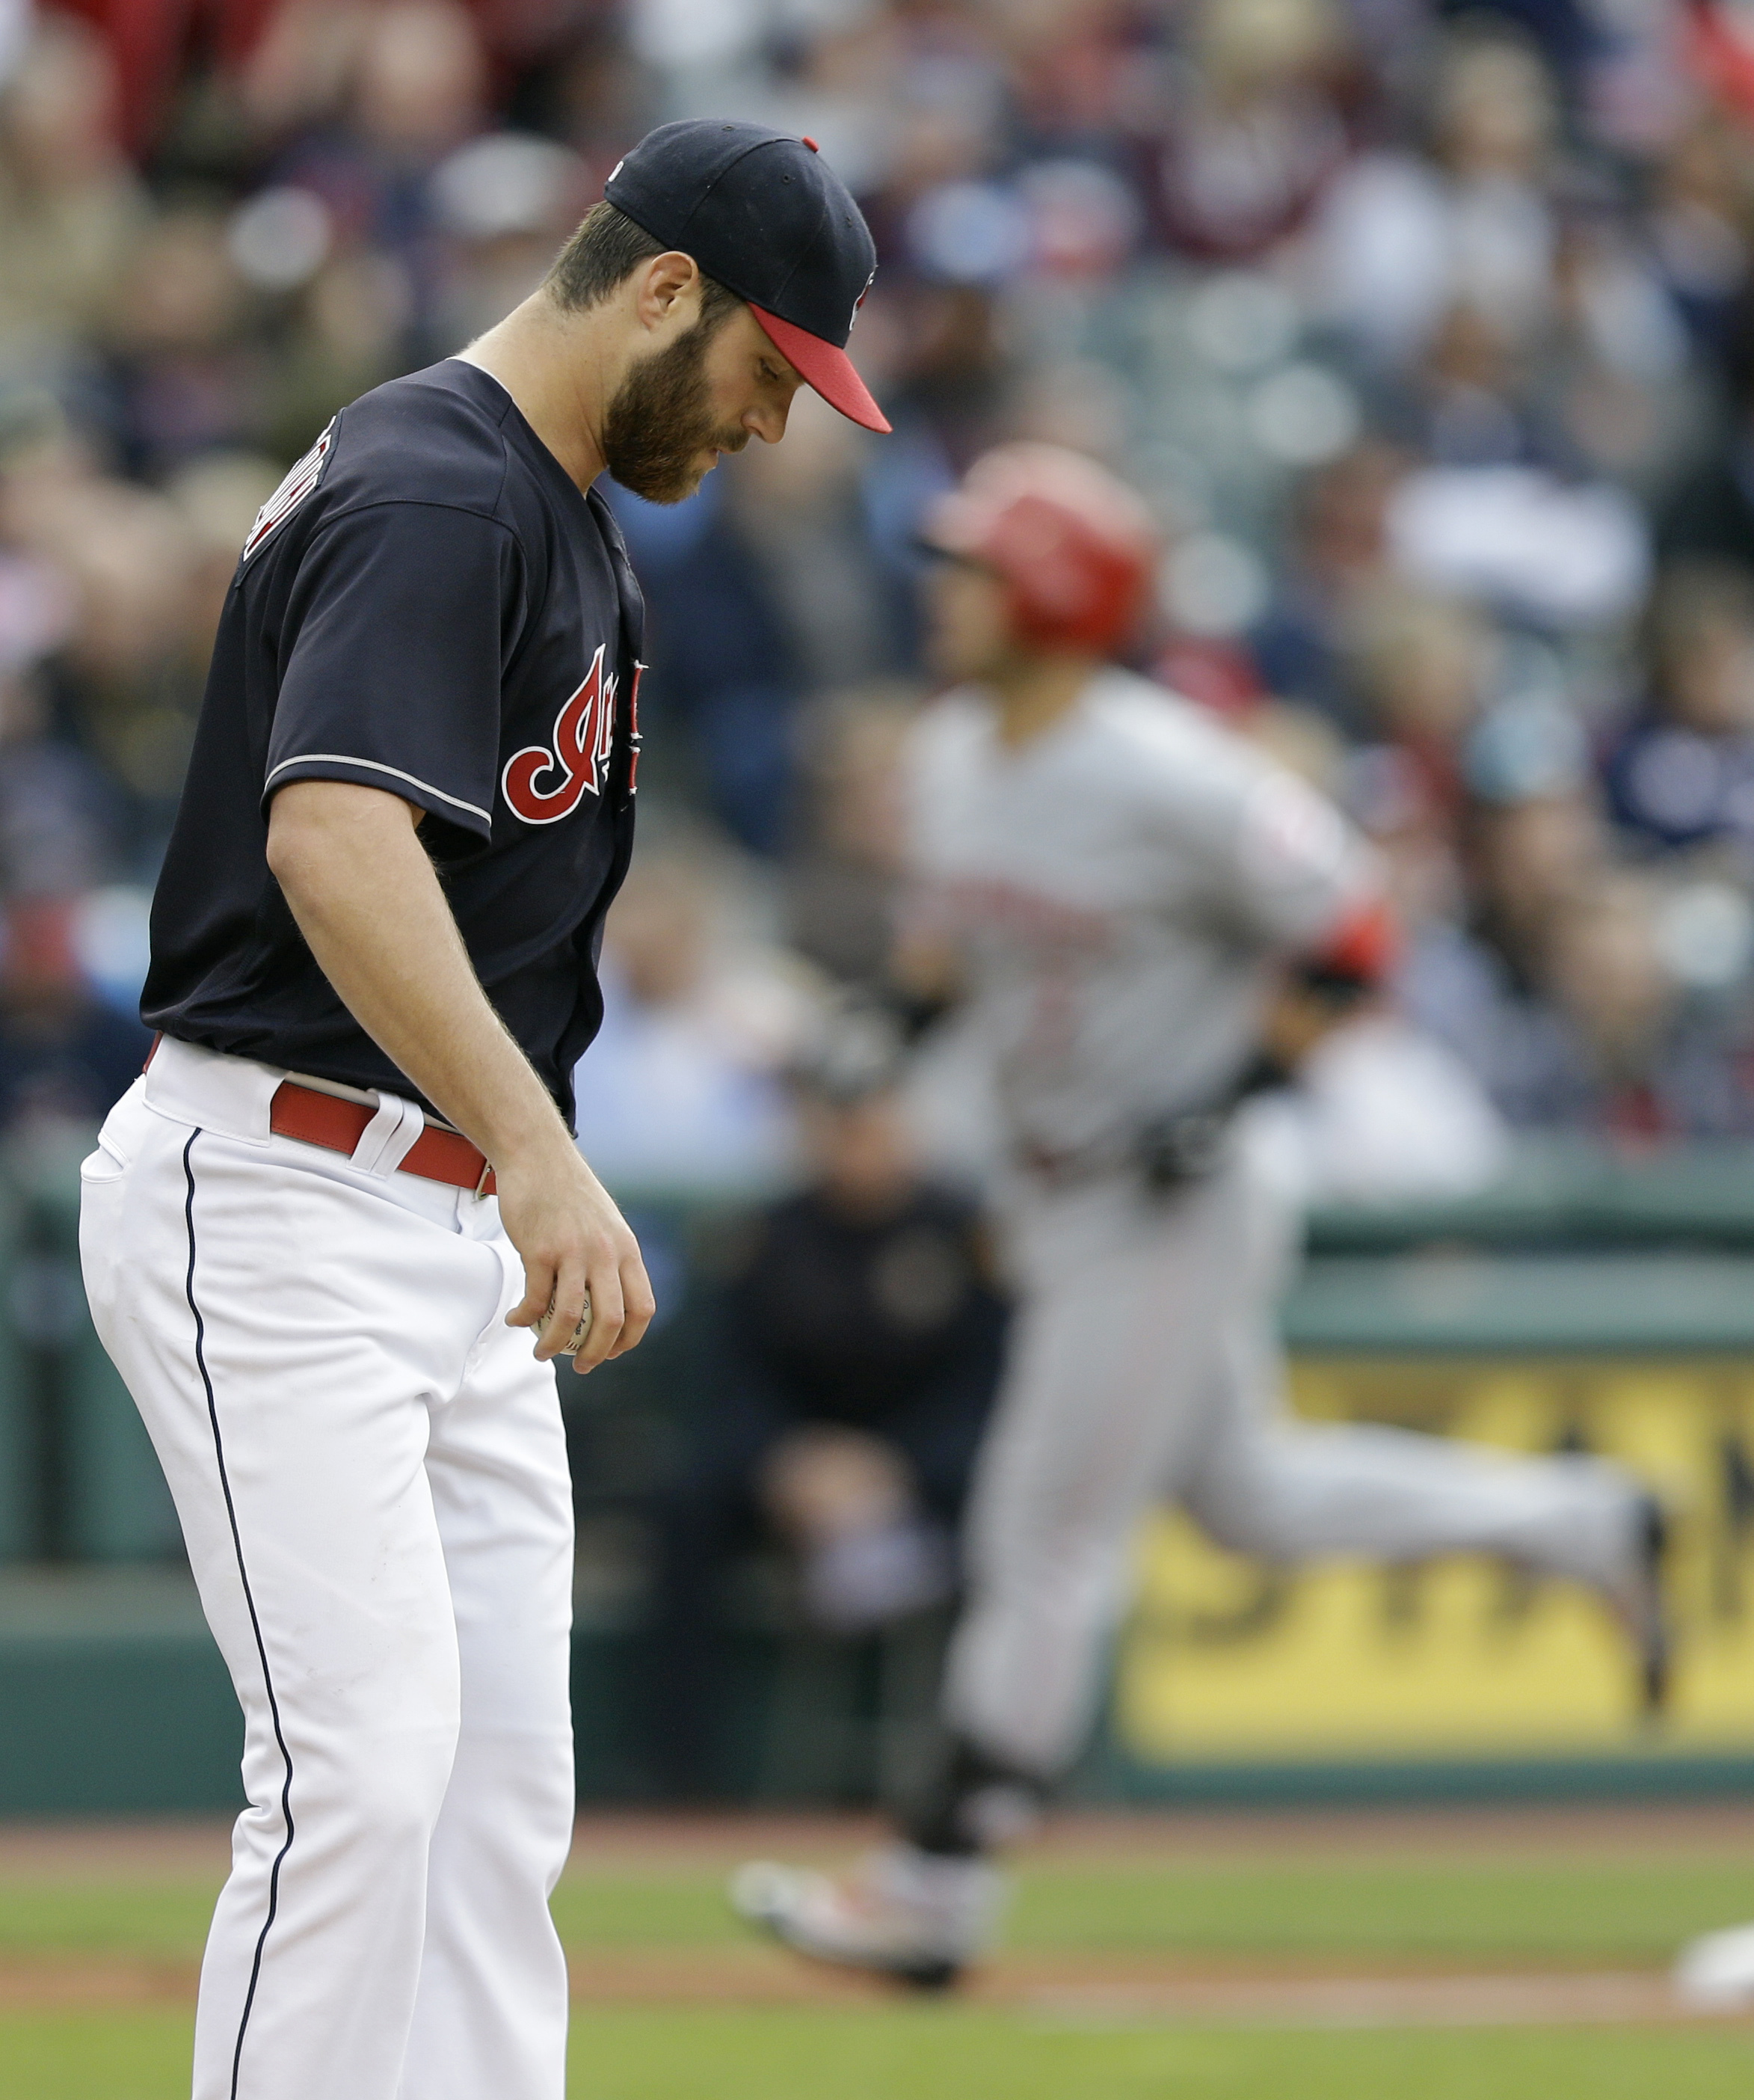 Cleveland Indians starting pitcher Cody Anderson, left, waits for Cincinnati Reds' Eugenio Suarez, right, to run the bases after Suarez hit a two-run home run off Anderson in the third inning of an interleague baseball game, Monday, May 16, 2016, in Cleve